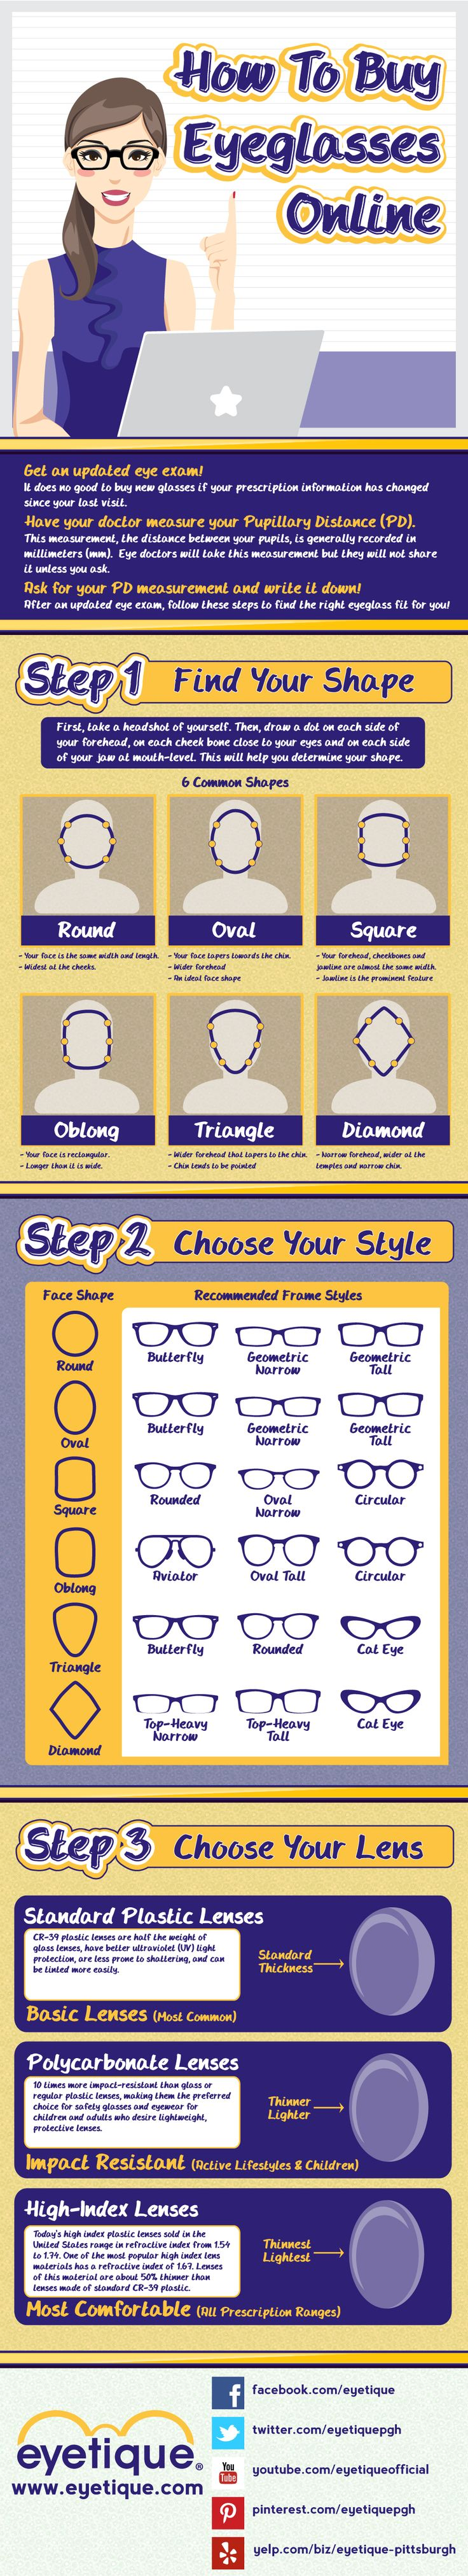 best place to order glasses online  17 Best ideas about Online Eyeglasses on Pinterest